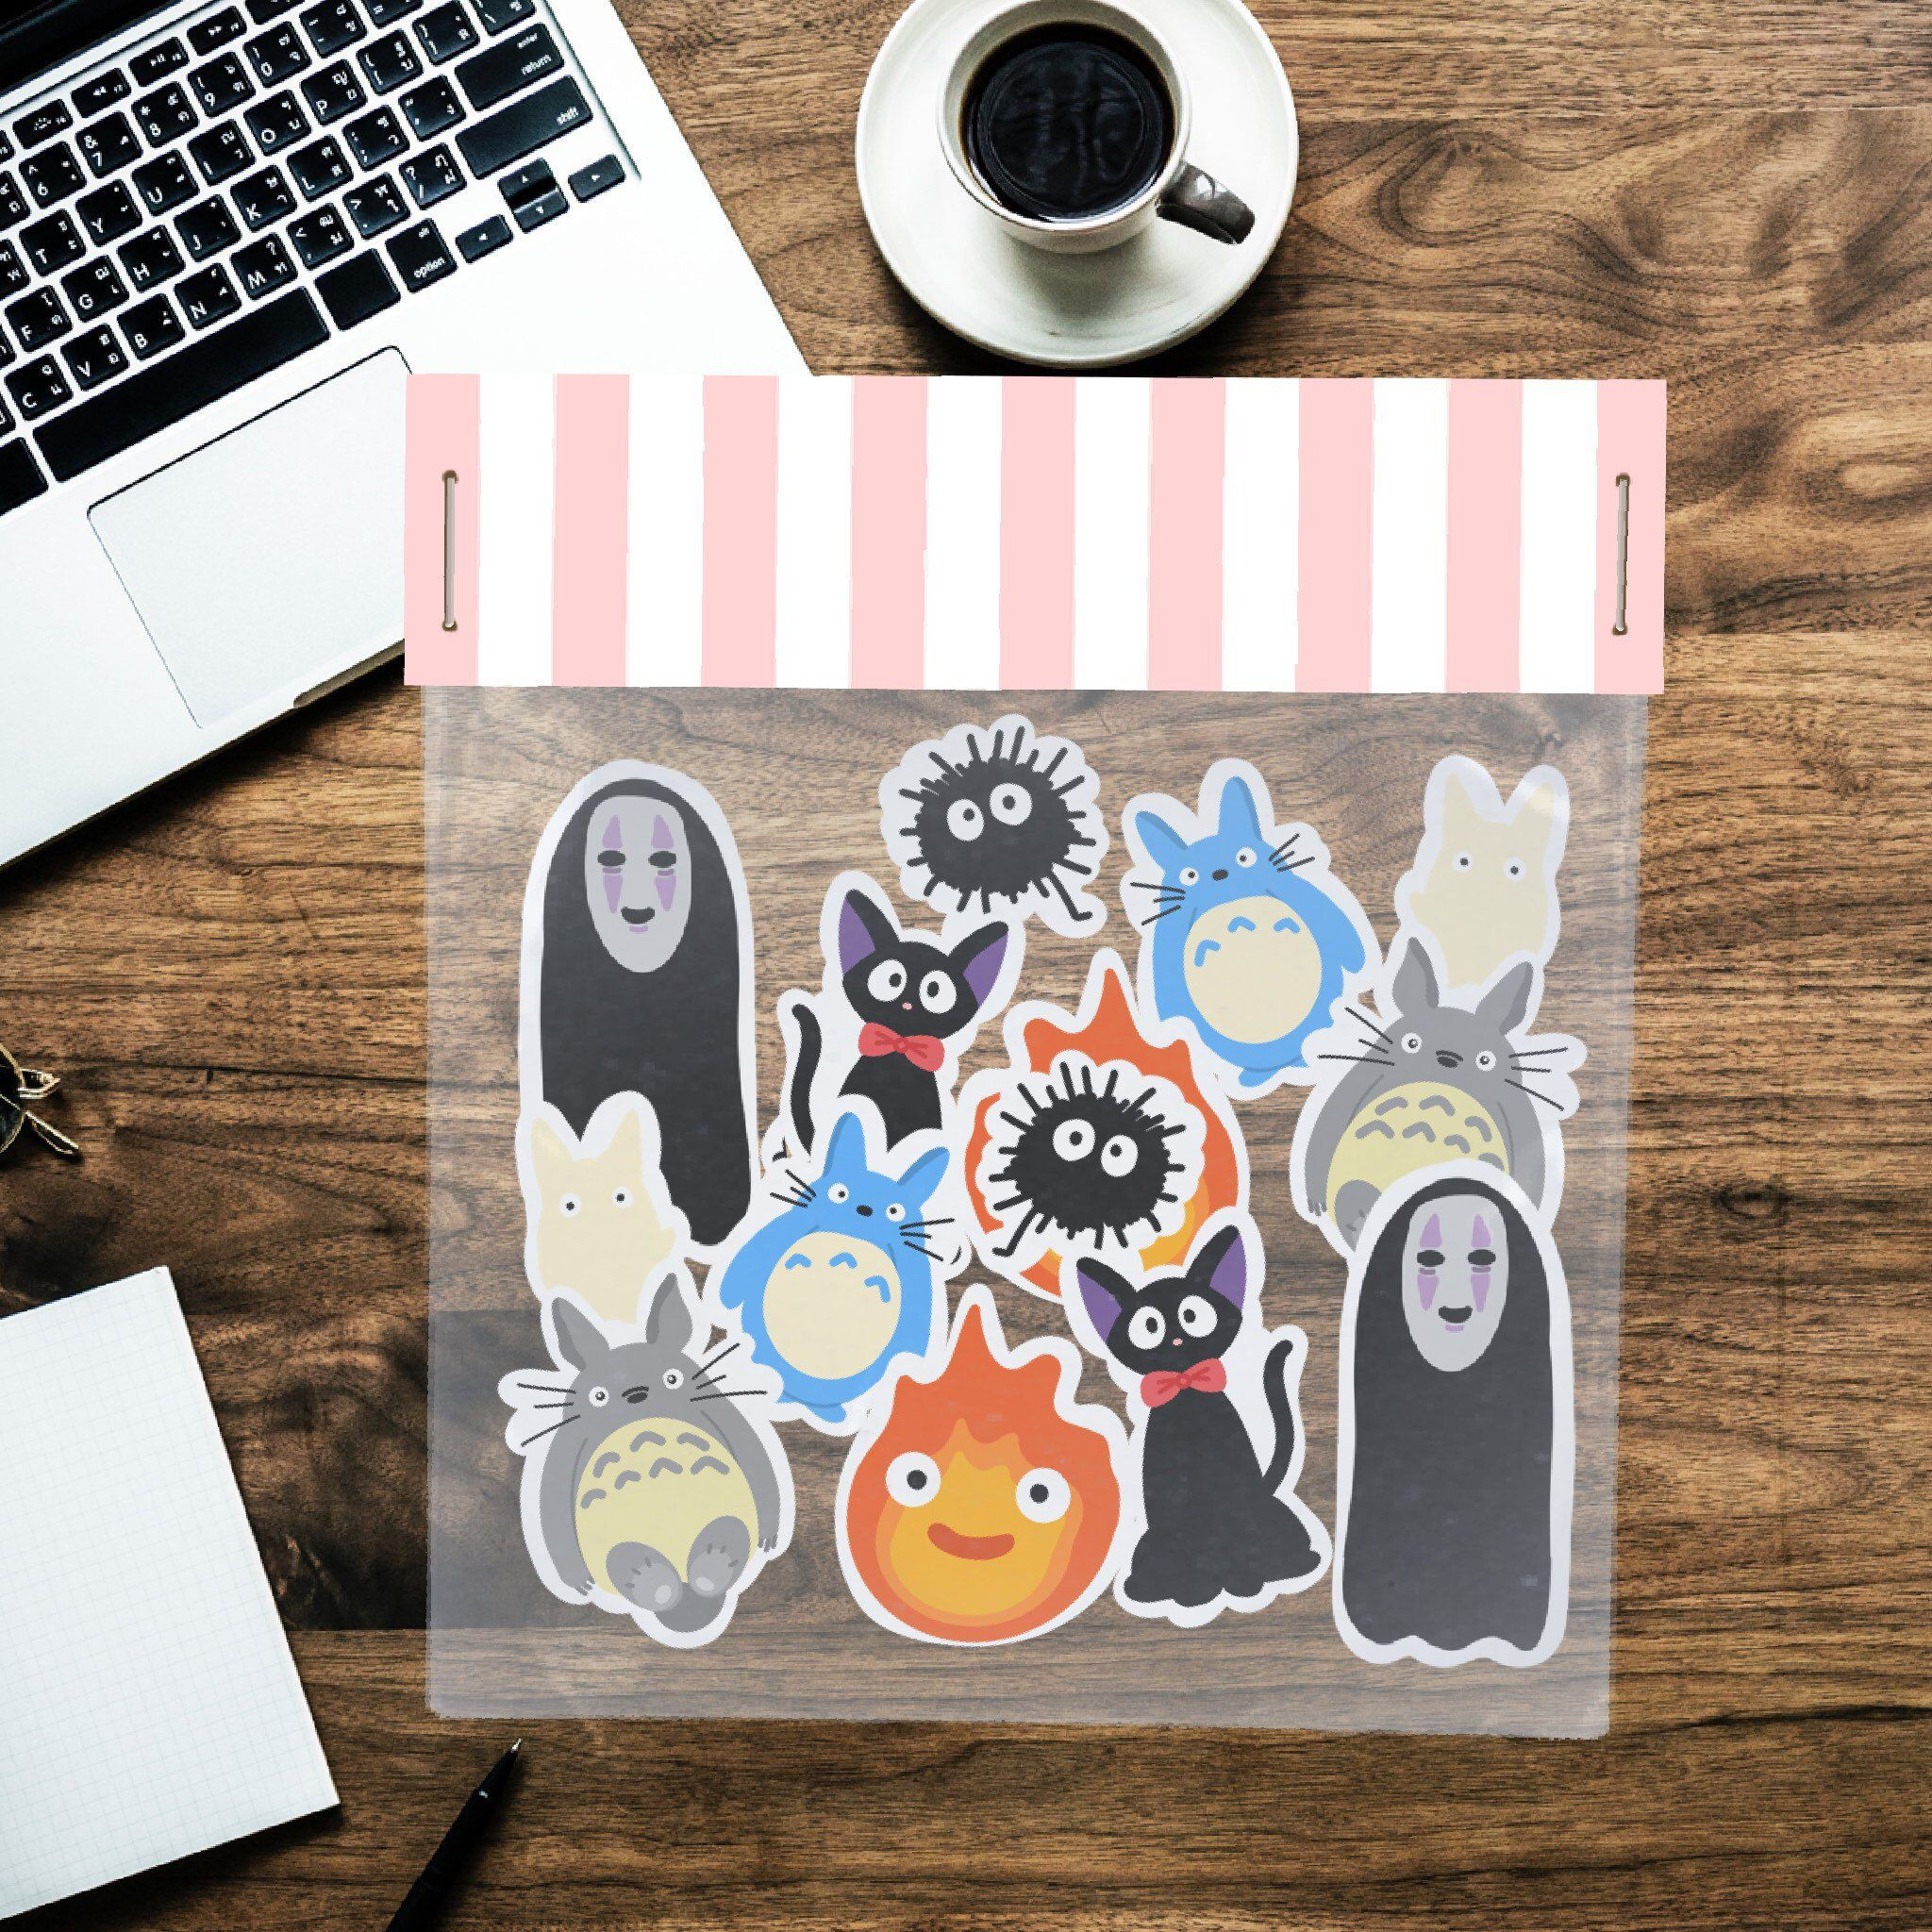 14 Pcs Kawaii Studio Ghibli Decorative Sticker Flakes Aesthetic Vinyl Stickers For Planners And Bullet Journals In 2020 Planner Stickers Cute Stickers Easter Stickers